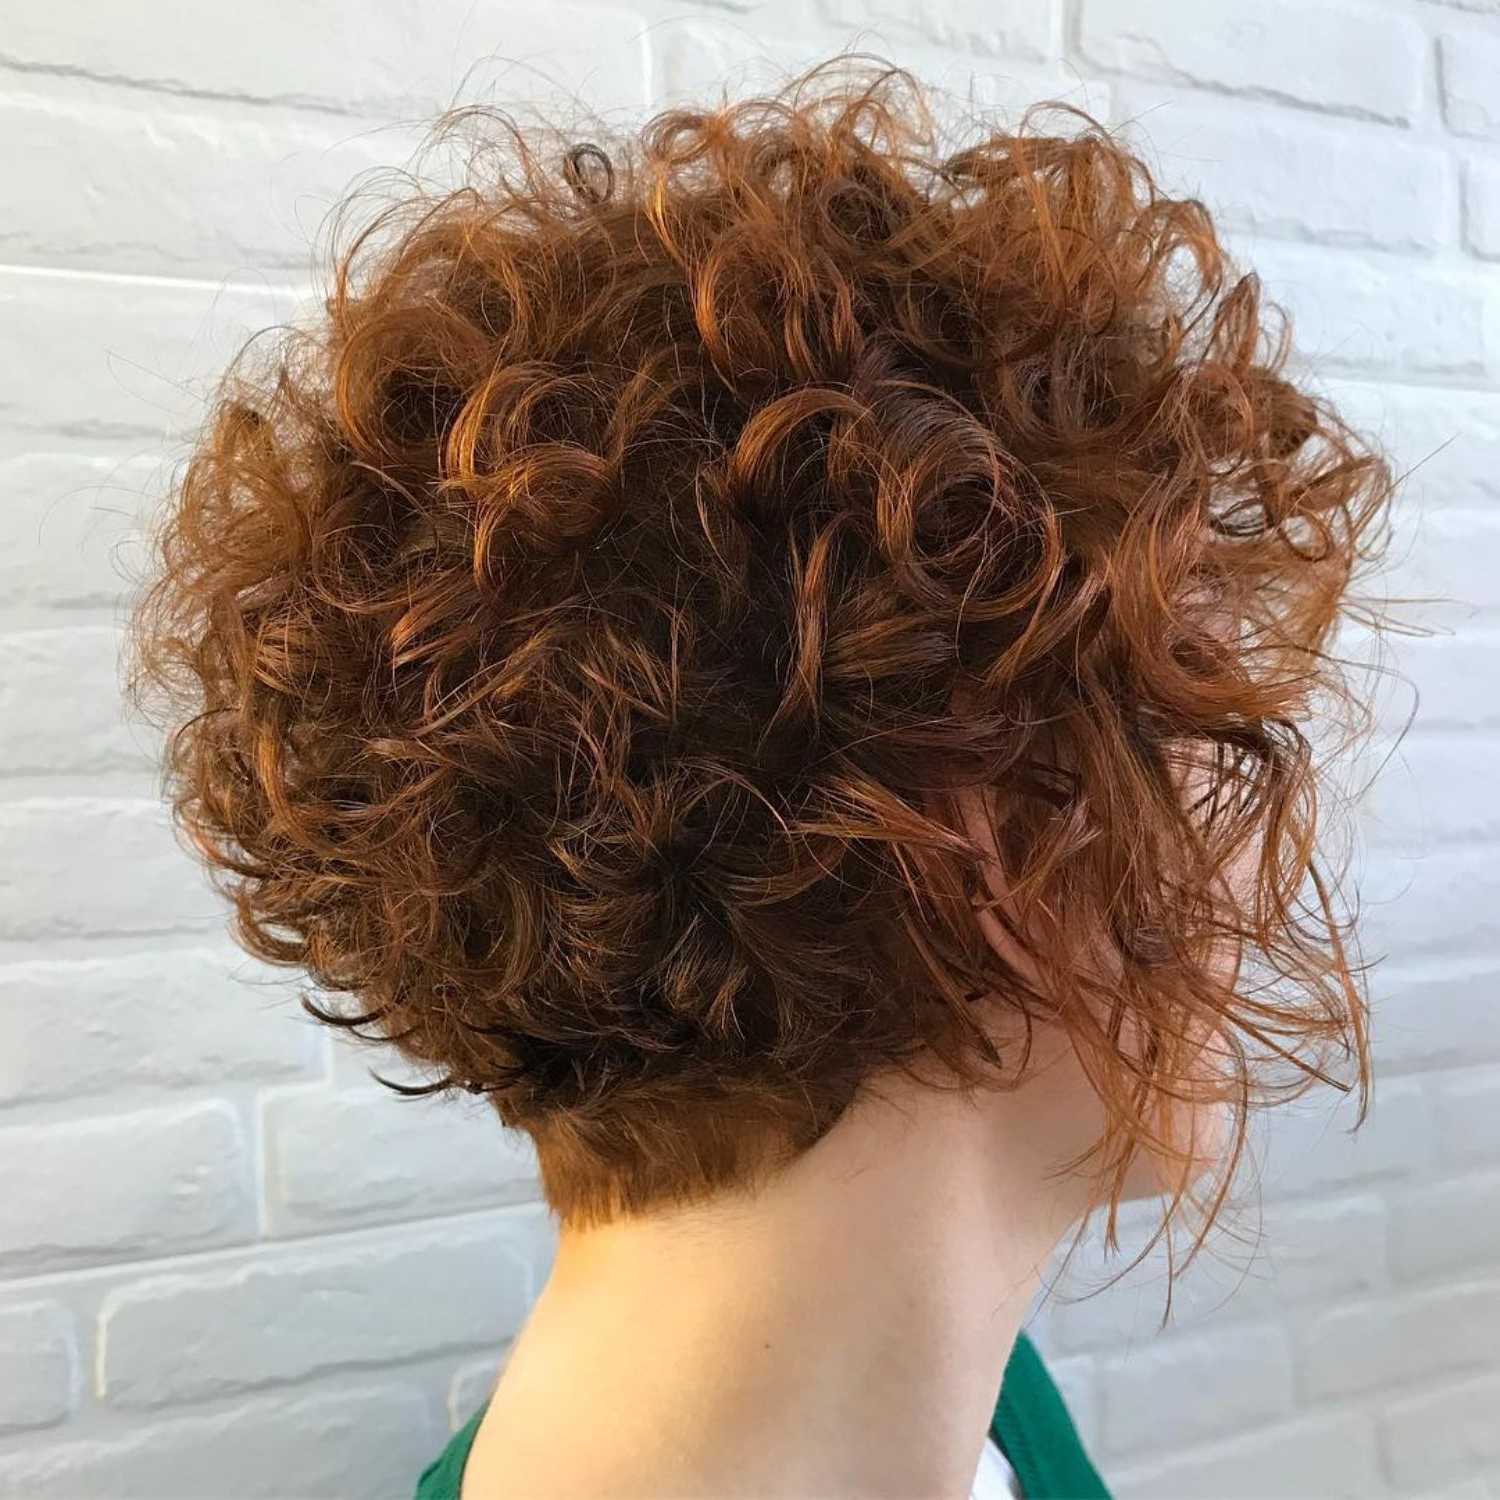 60 Most Delightful Short Wavy Hairstyles In 2018 | Hairstyles Inside Short Bob Hairstyles With Whipped Curls And Babylights (View 12 of 20)